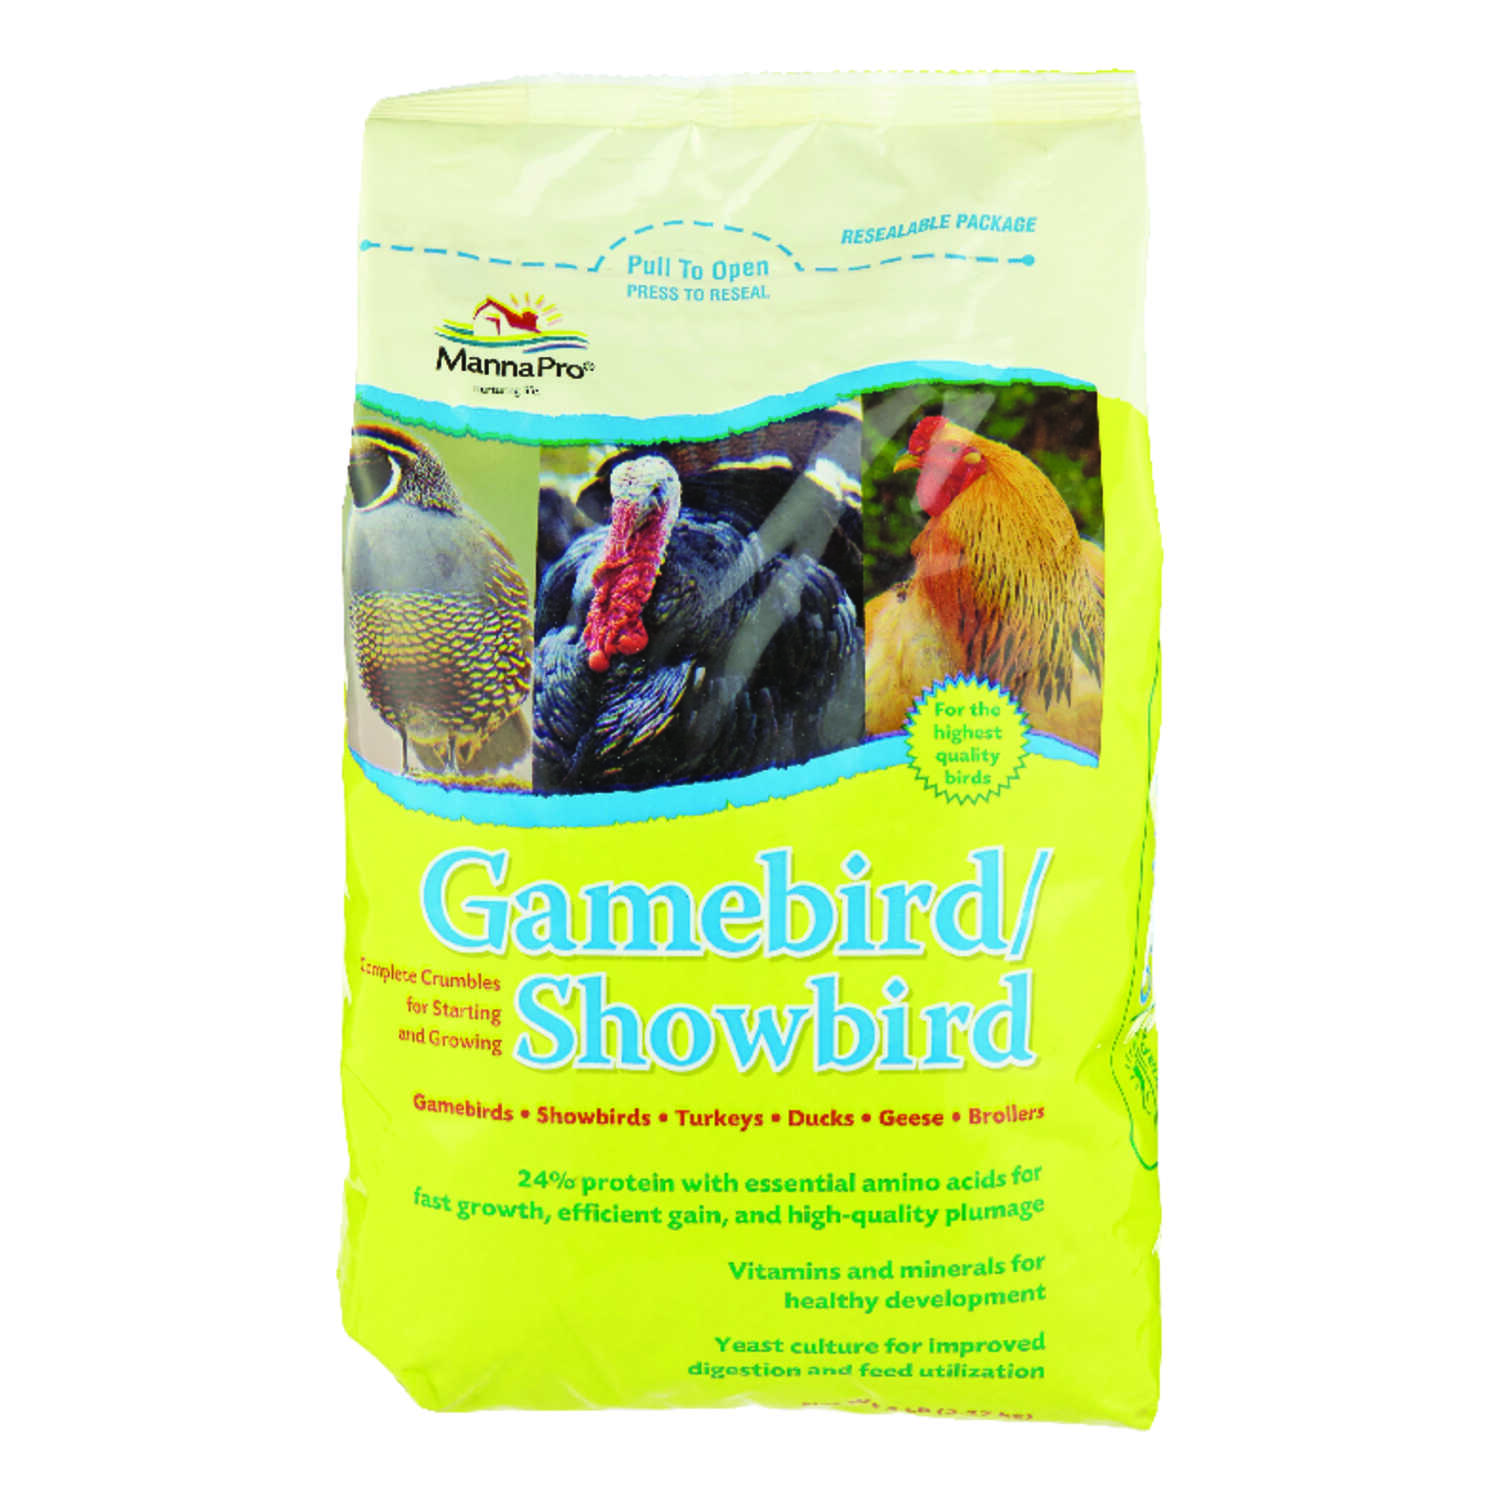 Manna Pro  Gamebird/Showbird  Food  Crumble  For Poultry 5 lb.